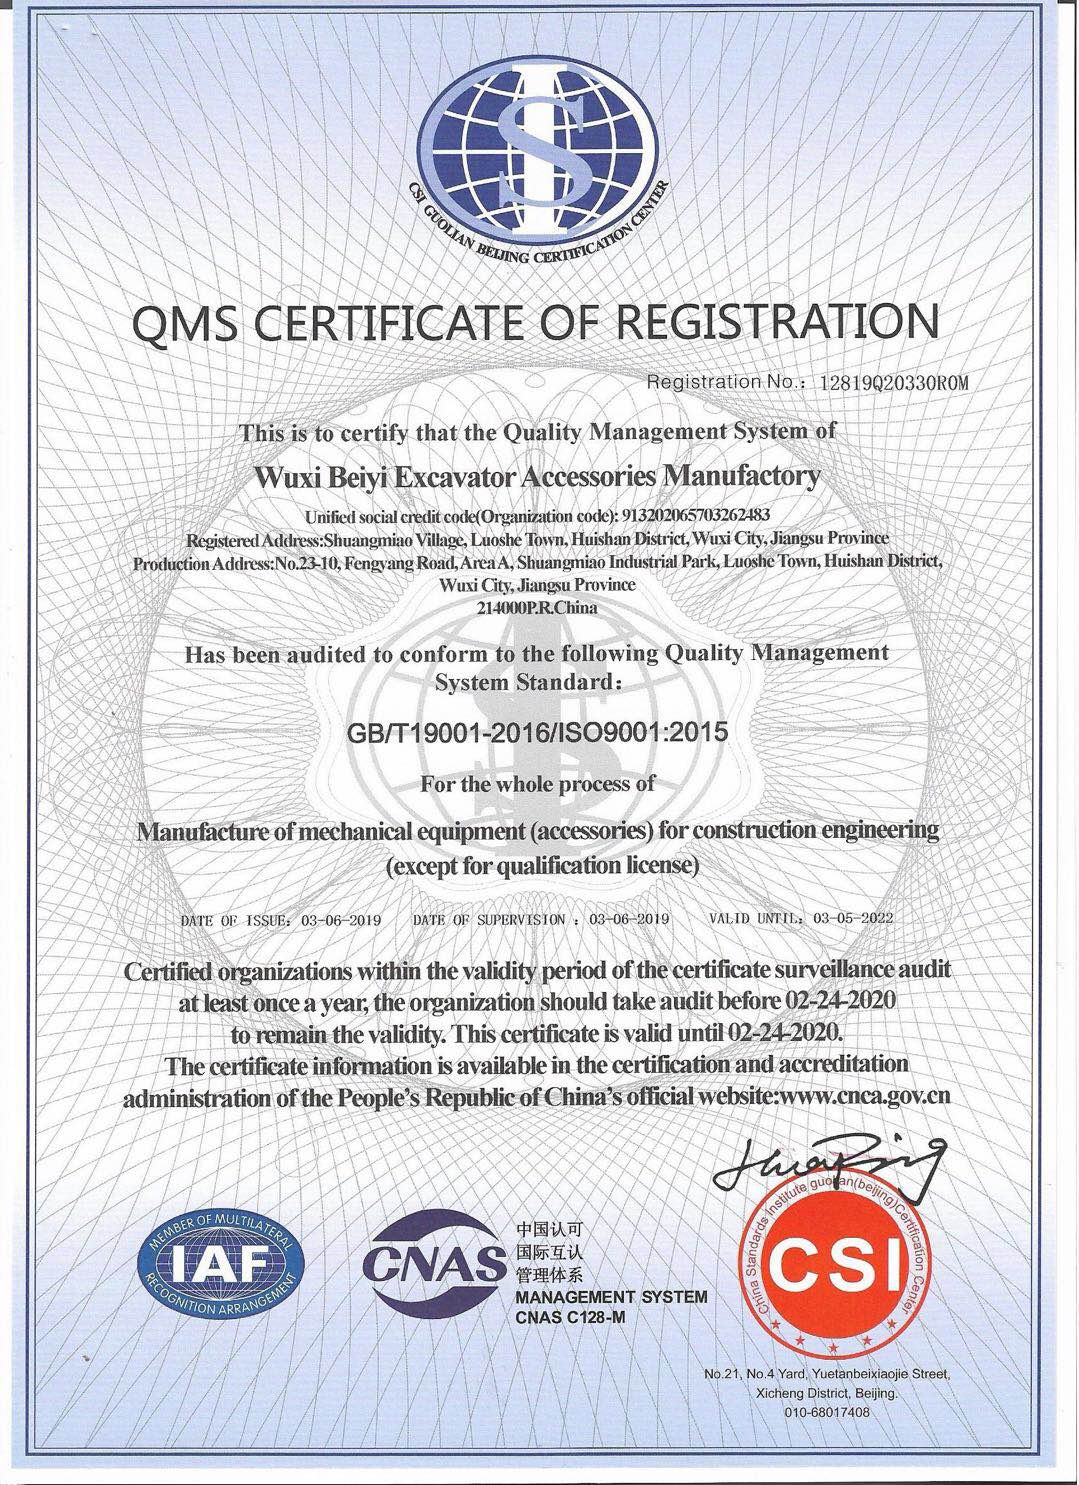 QMS CERTIFICATE OF REGISTRATION证书图片